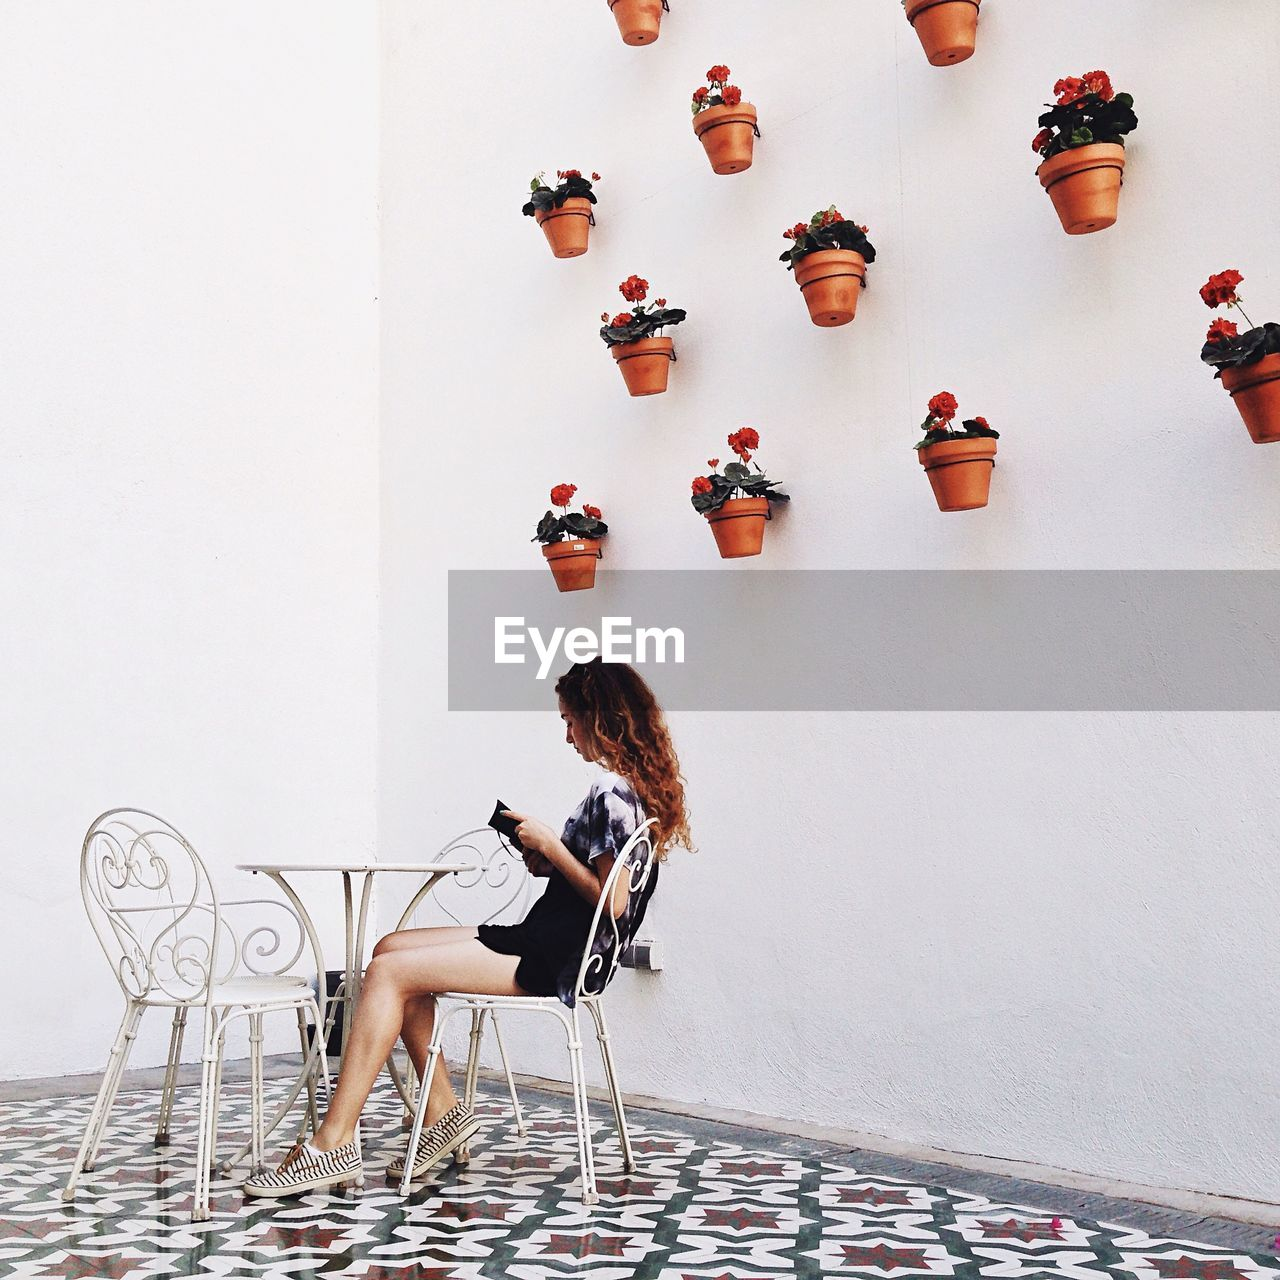 Side View Of Young Woman Sitting On Chair Looking At Menu Card Against Potted Plants On Wall Indoors